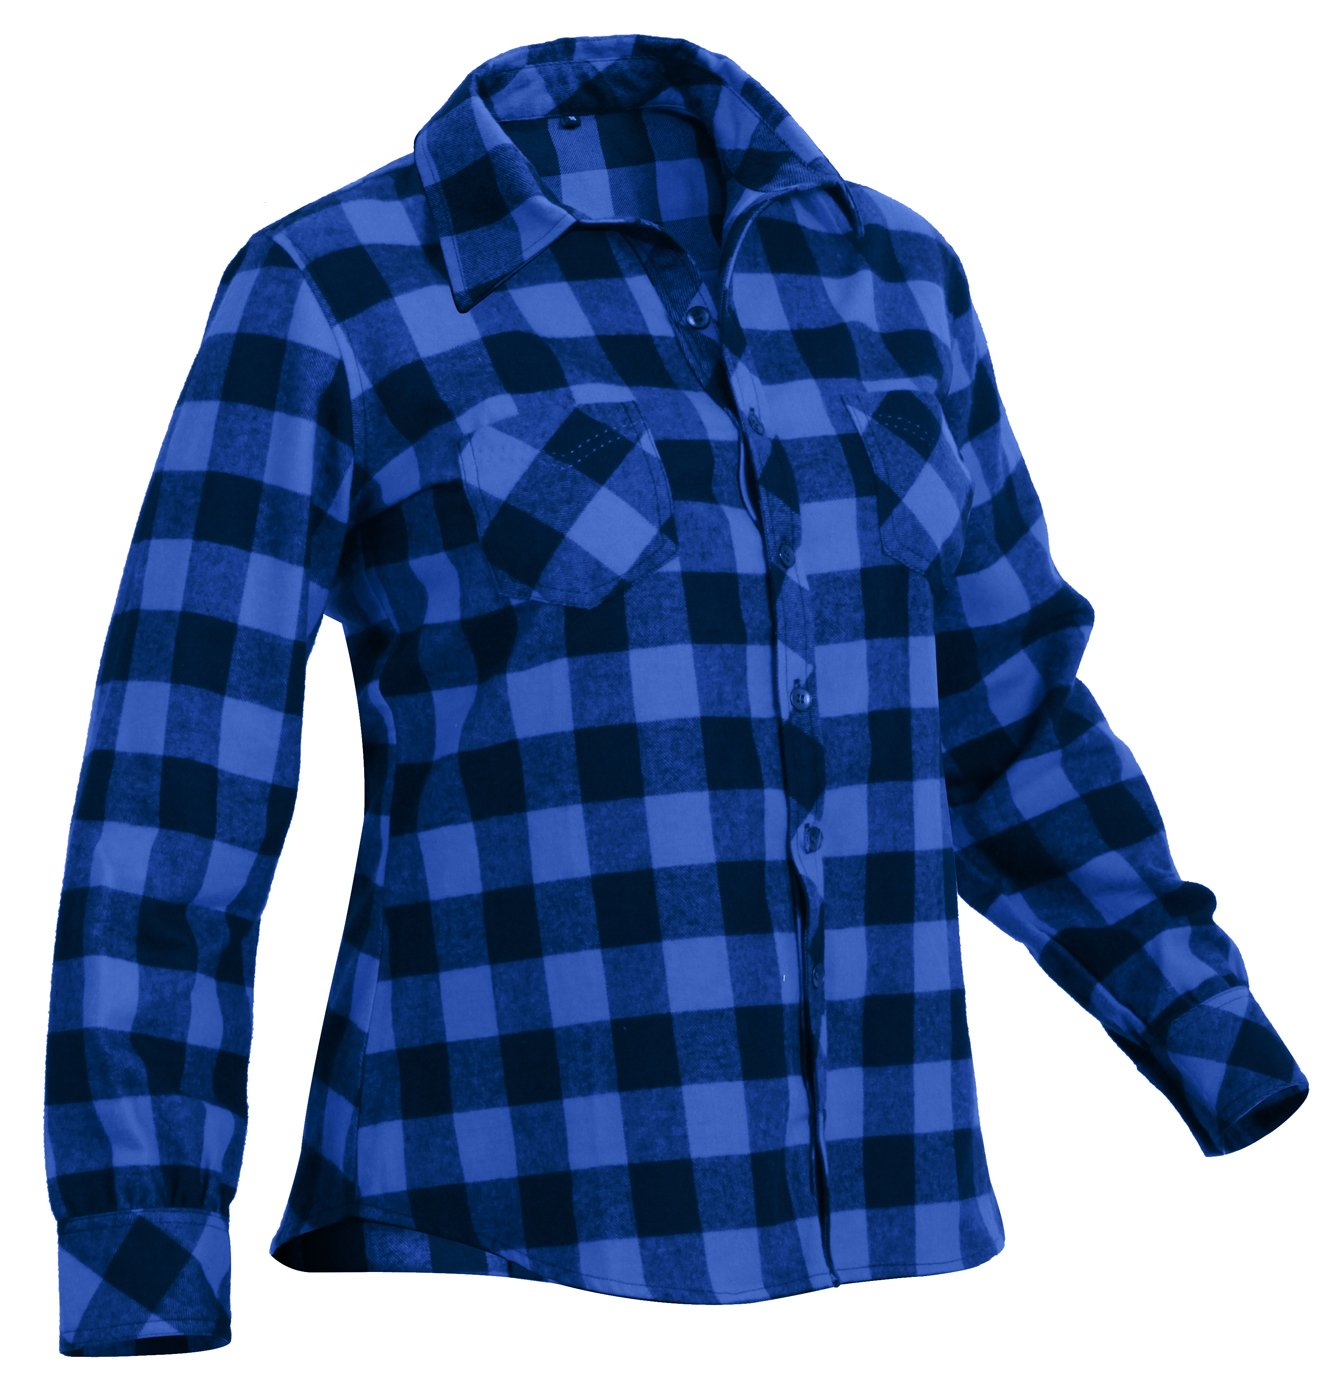 Rothco Womens Plaid Flannel Shirt, Blue/Black, L, Blue by Rothco